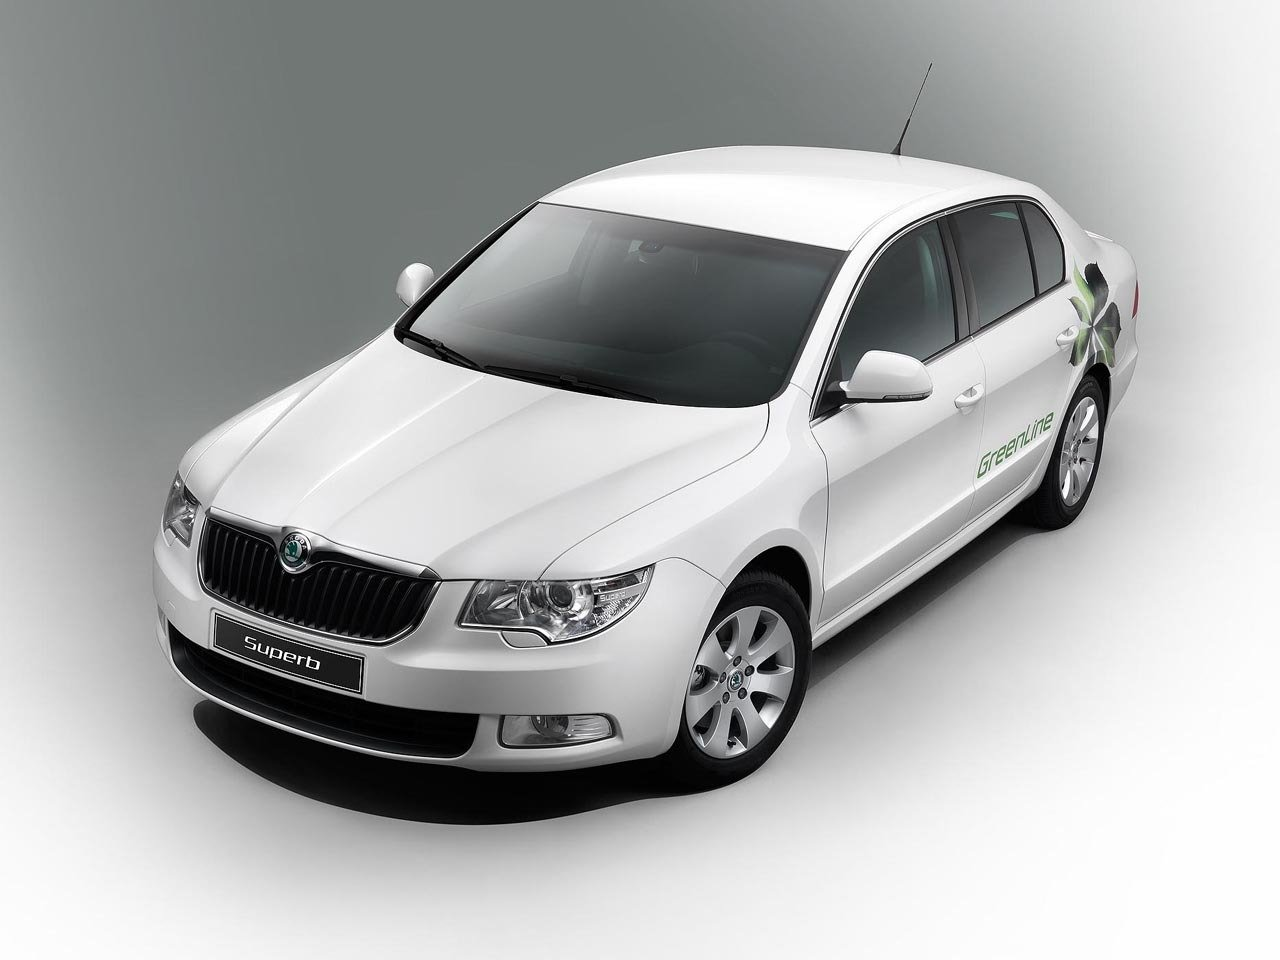 gallery: 2009 Skoda Superb